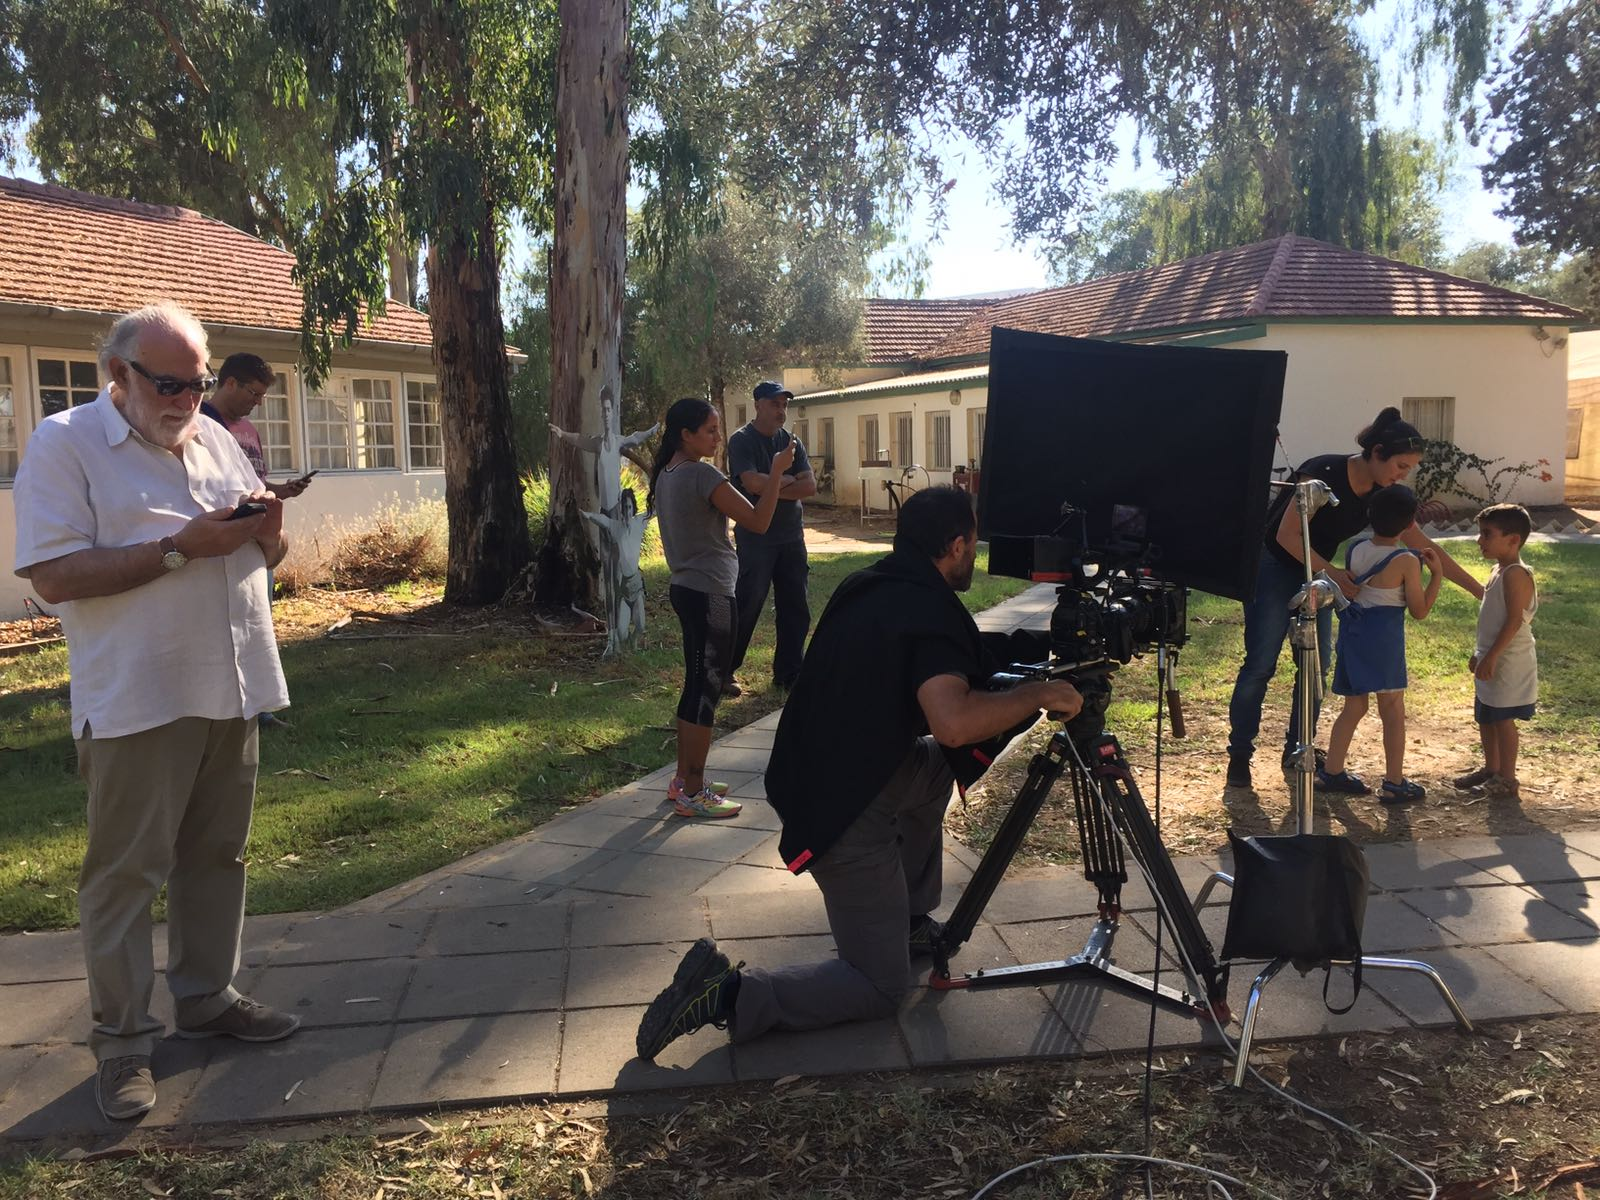 Sneak preview of newly shot film will be shown at the private home of the incoming JNF President in San Diego. The goal is to finish the movie by 2018 in time for Israel's 70th anniversary